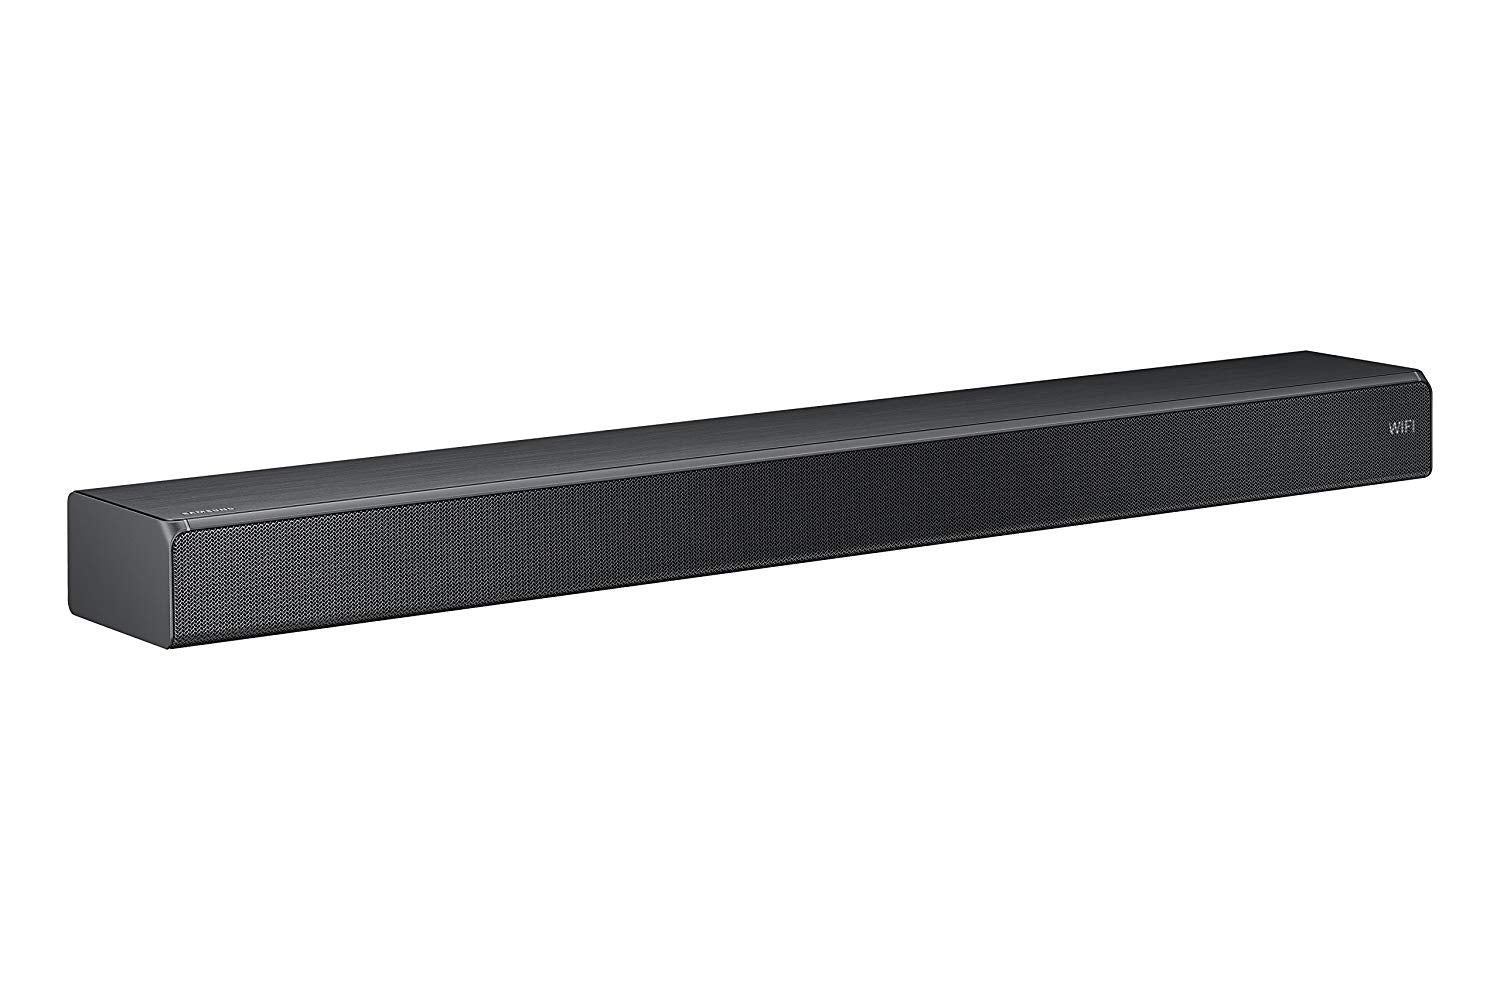 Samsung Soundbar+ (HW-MS550) Black  - 2 Channel, 5 Series (Pre-Owned)